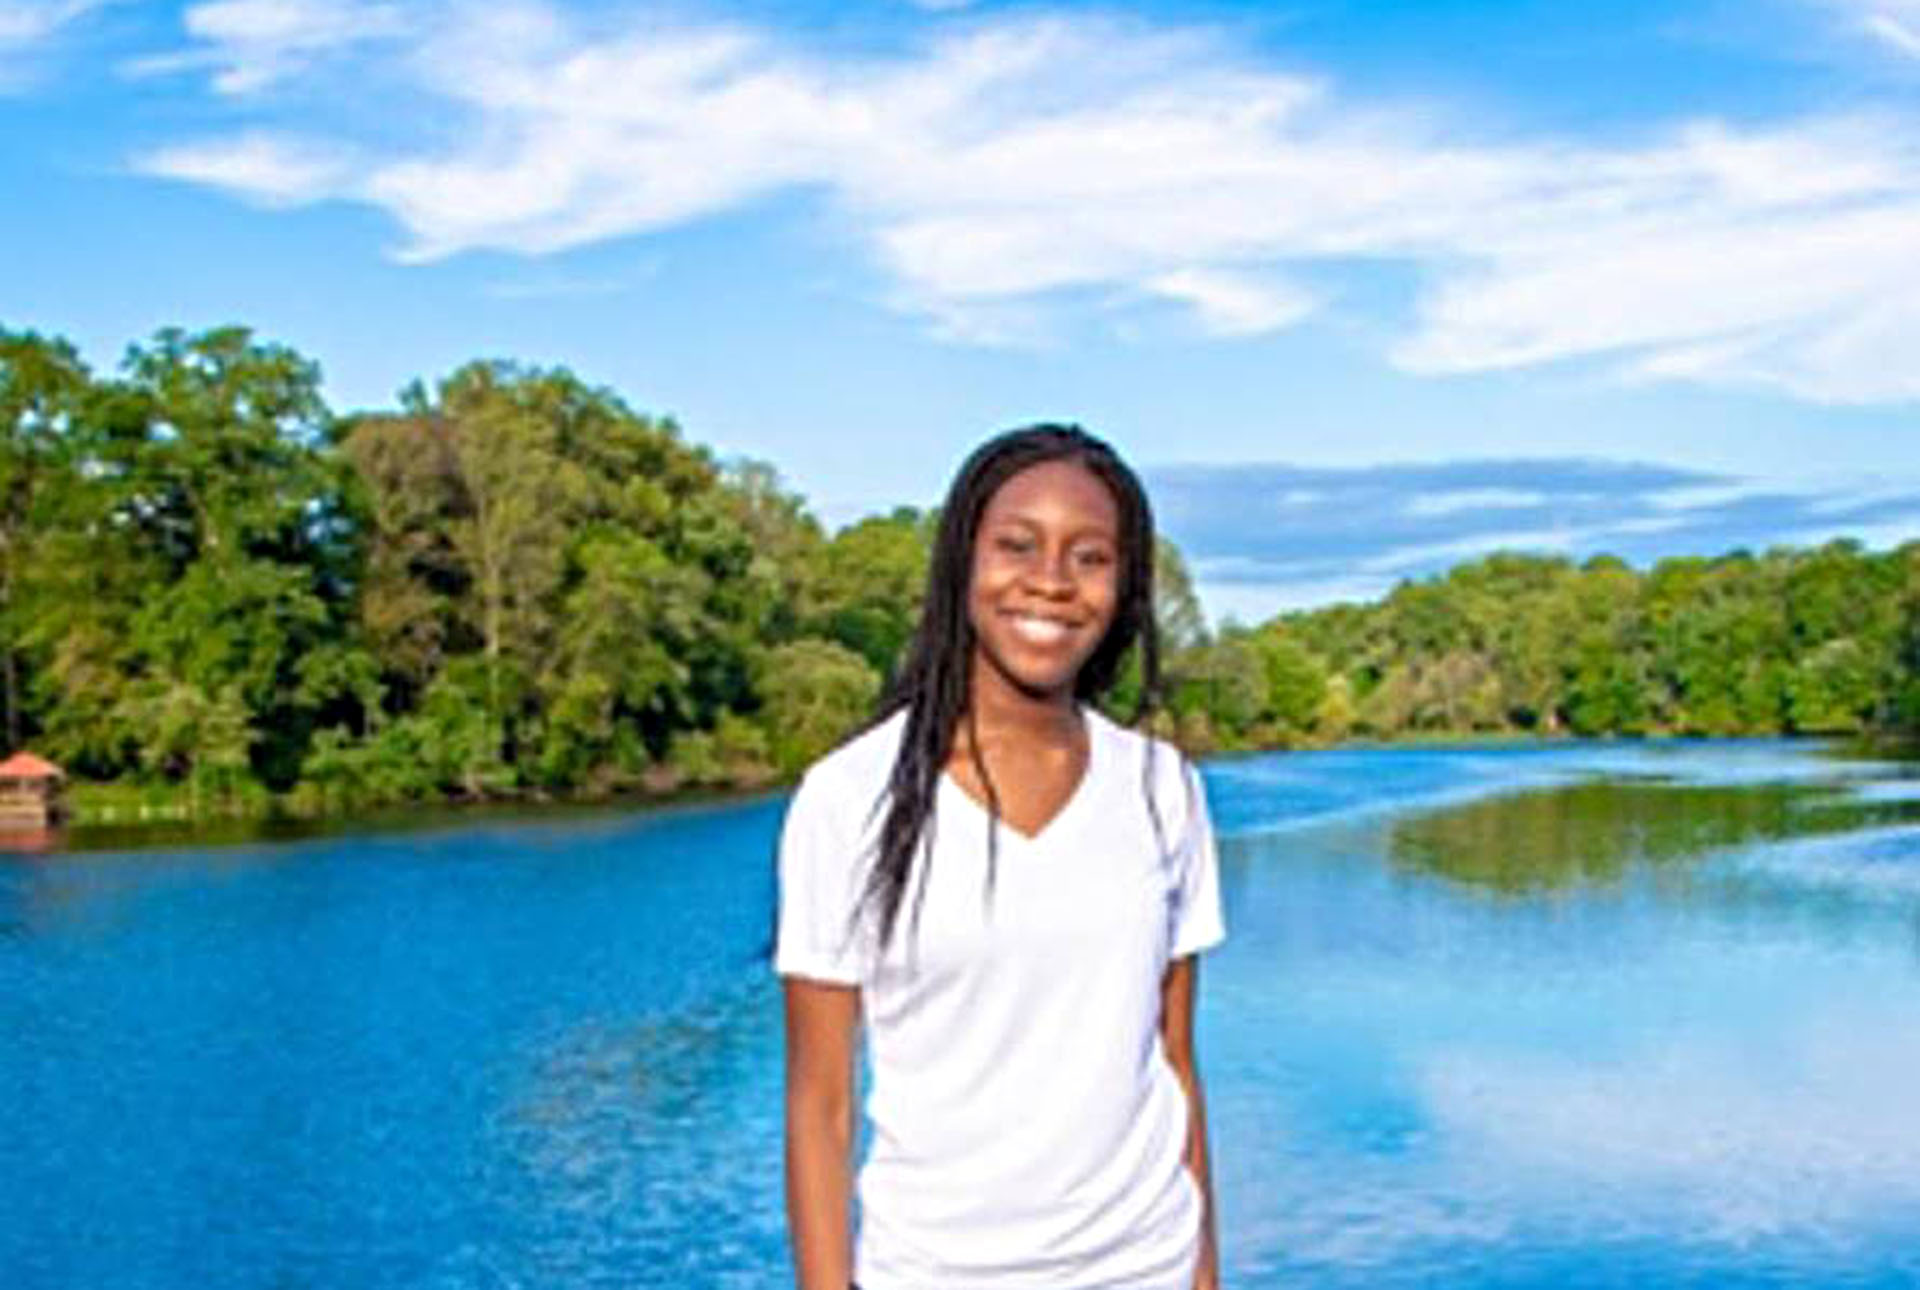 Colgan High School senior wins Water Art Invitational